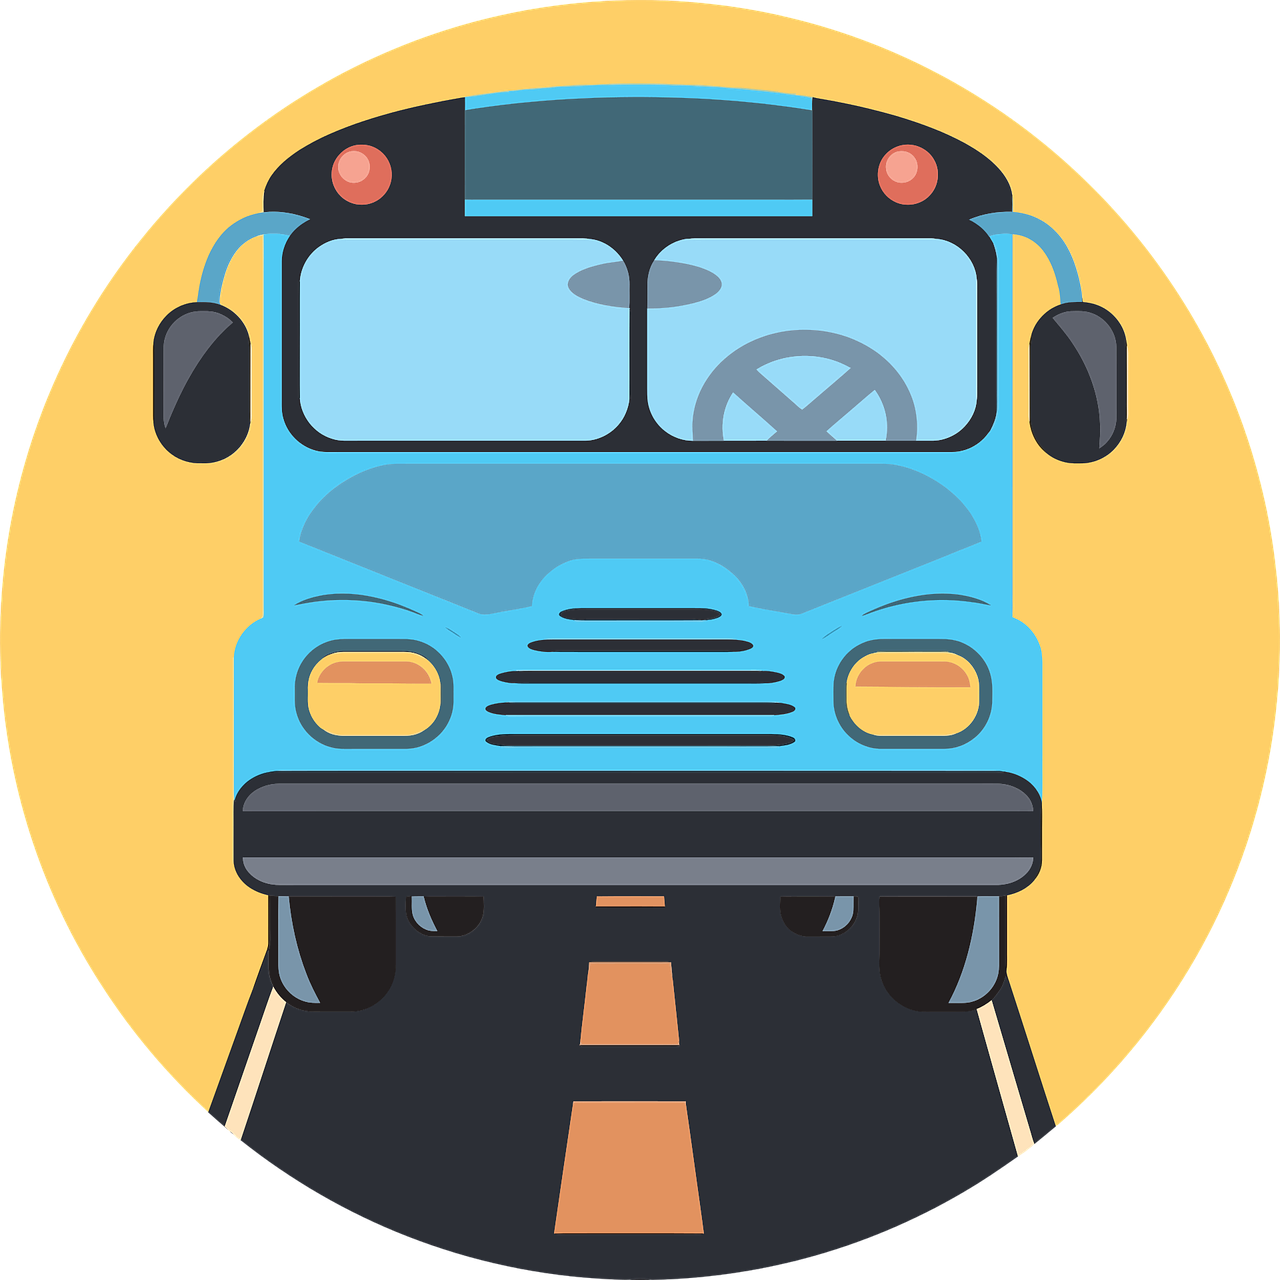 Clipart bus face. Drive icon png image